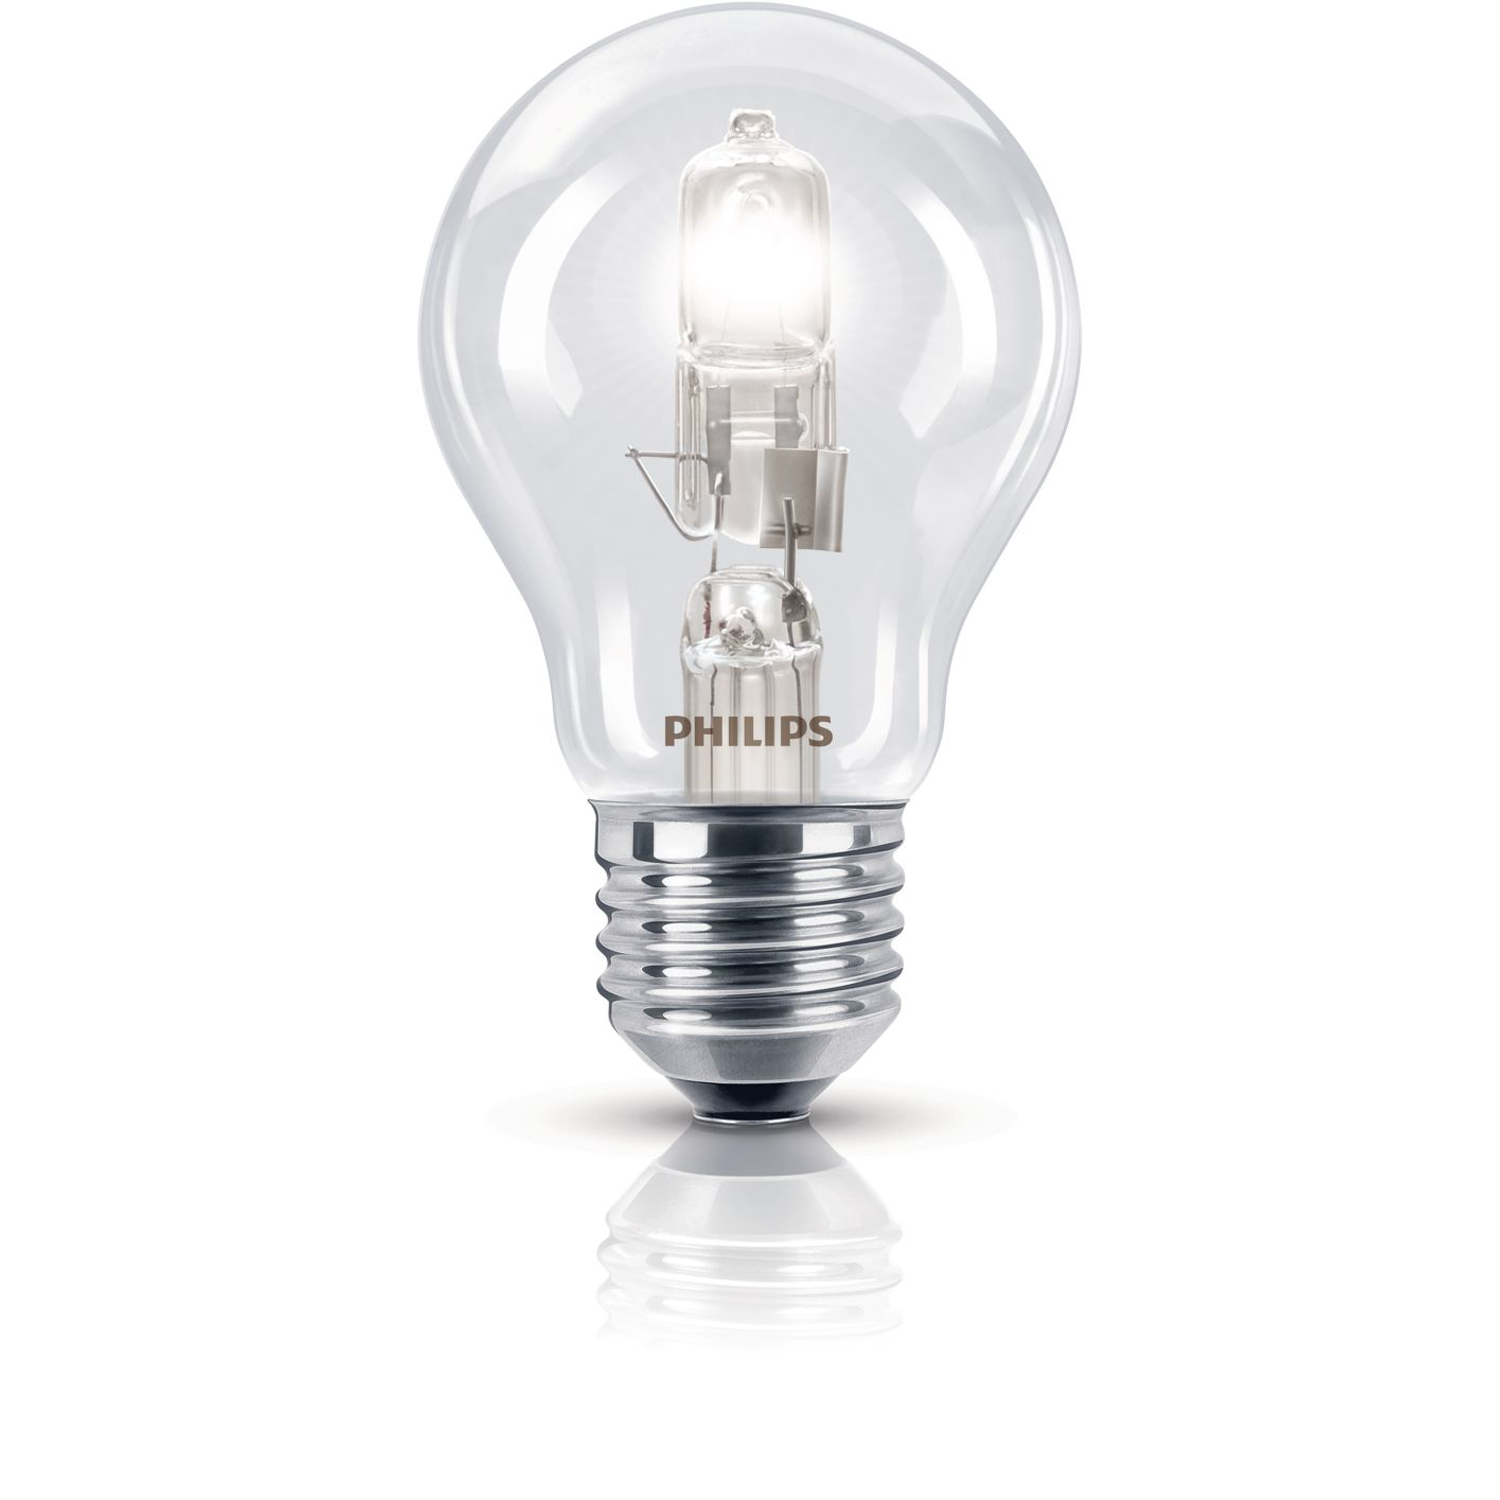 Philips Ecoclassic Halogen 42w E27 Bulb 240v, Warm White